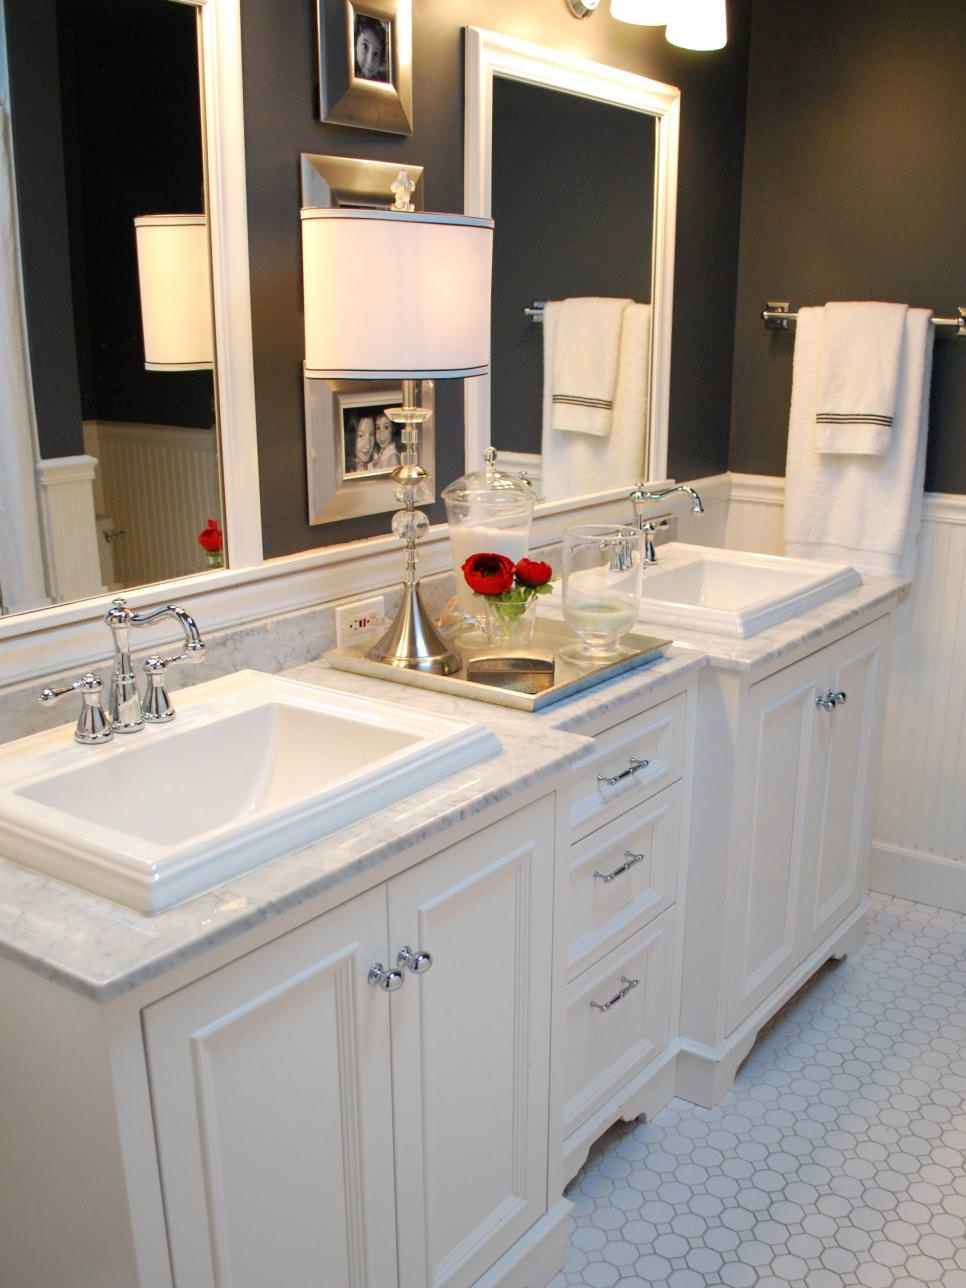 24 double bathroom vanity ideas bathroom designs for Bathroom vanity designs